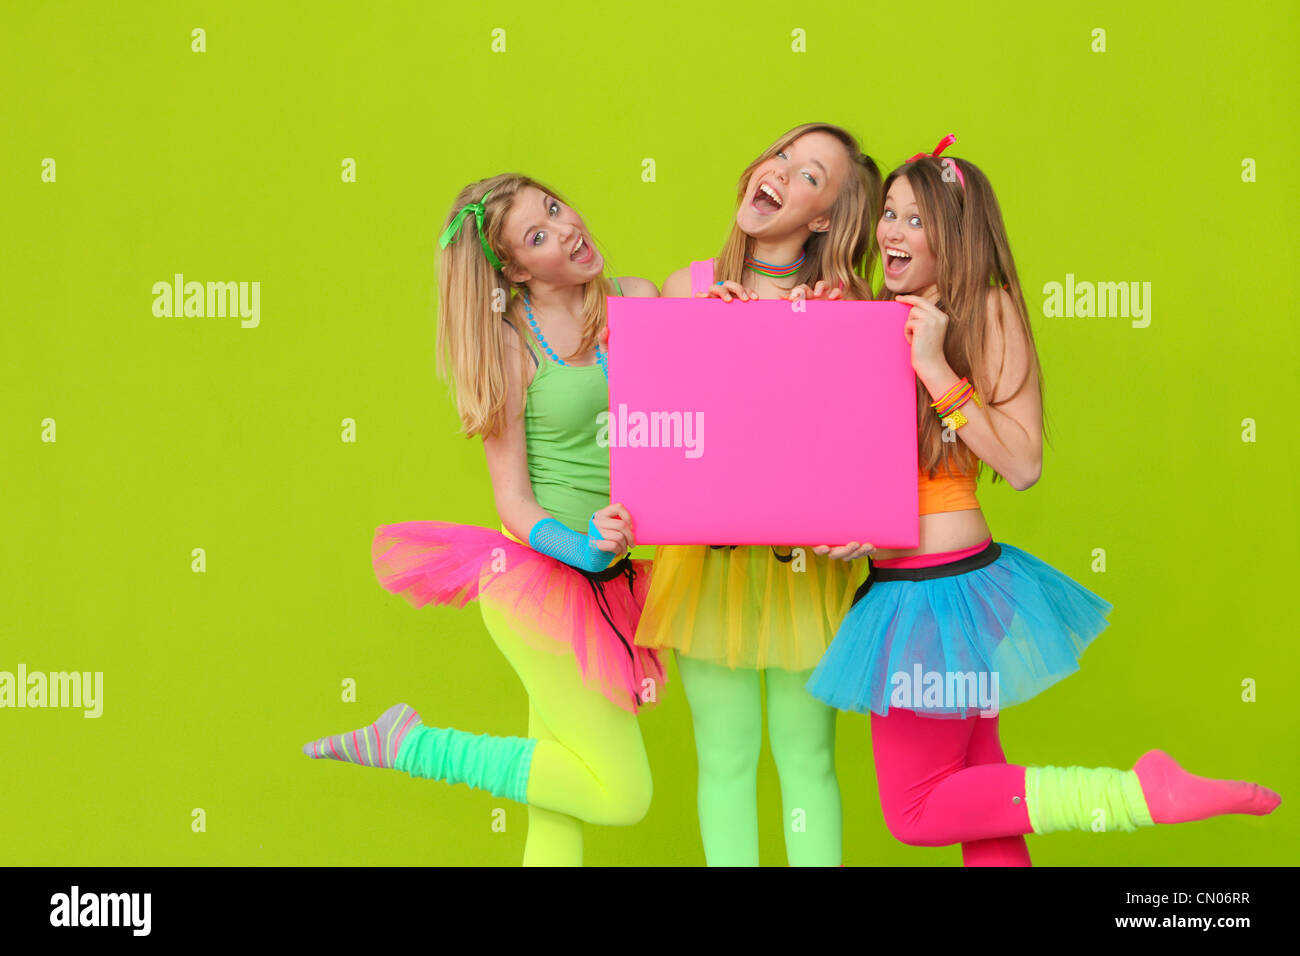 happy party teen girls in neon fancy dress clothing with blank board - Stock Image